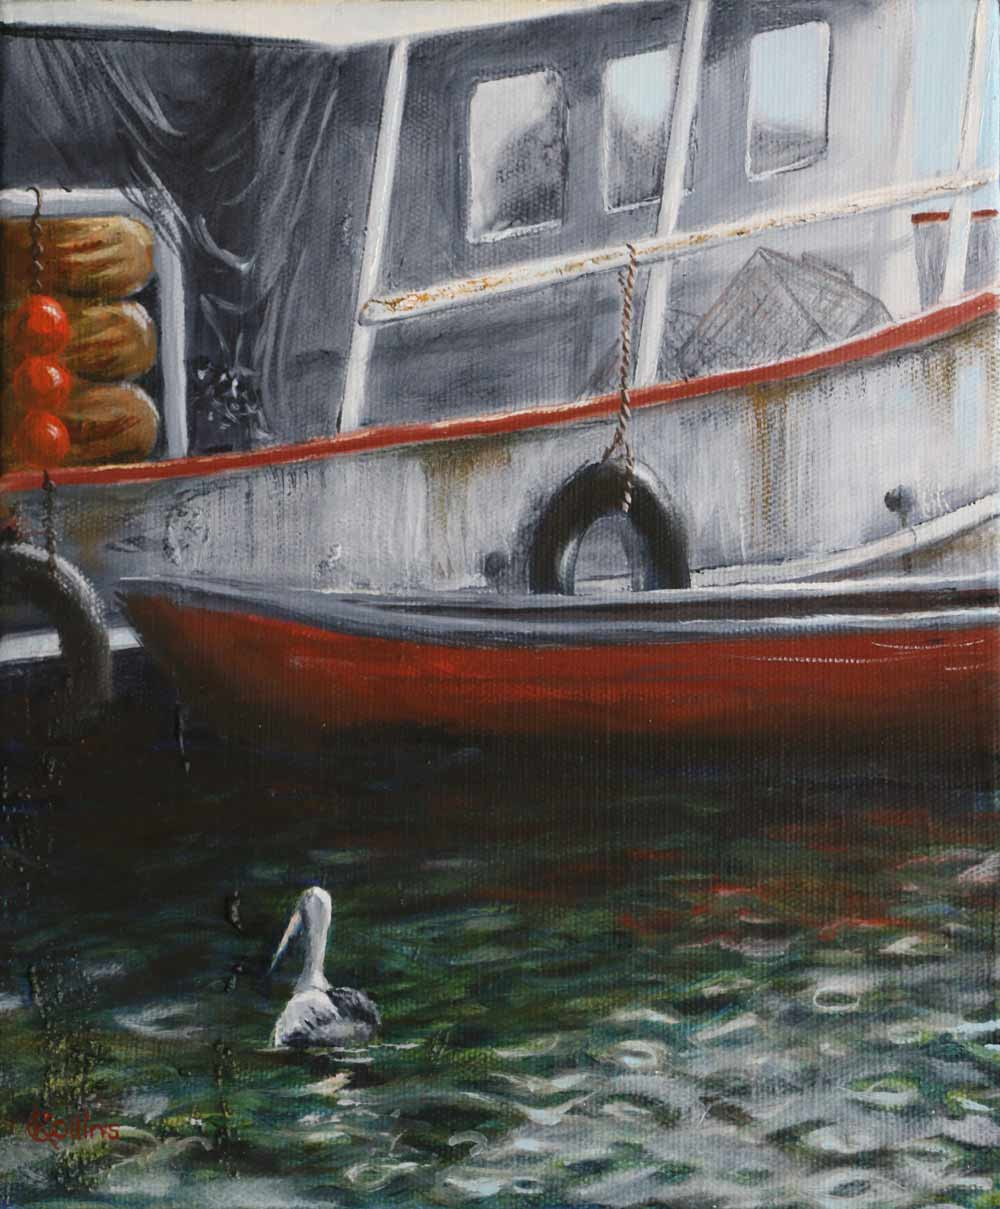 Painting of Fishing Boat